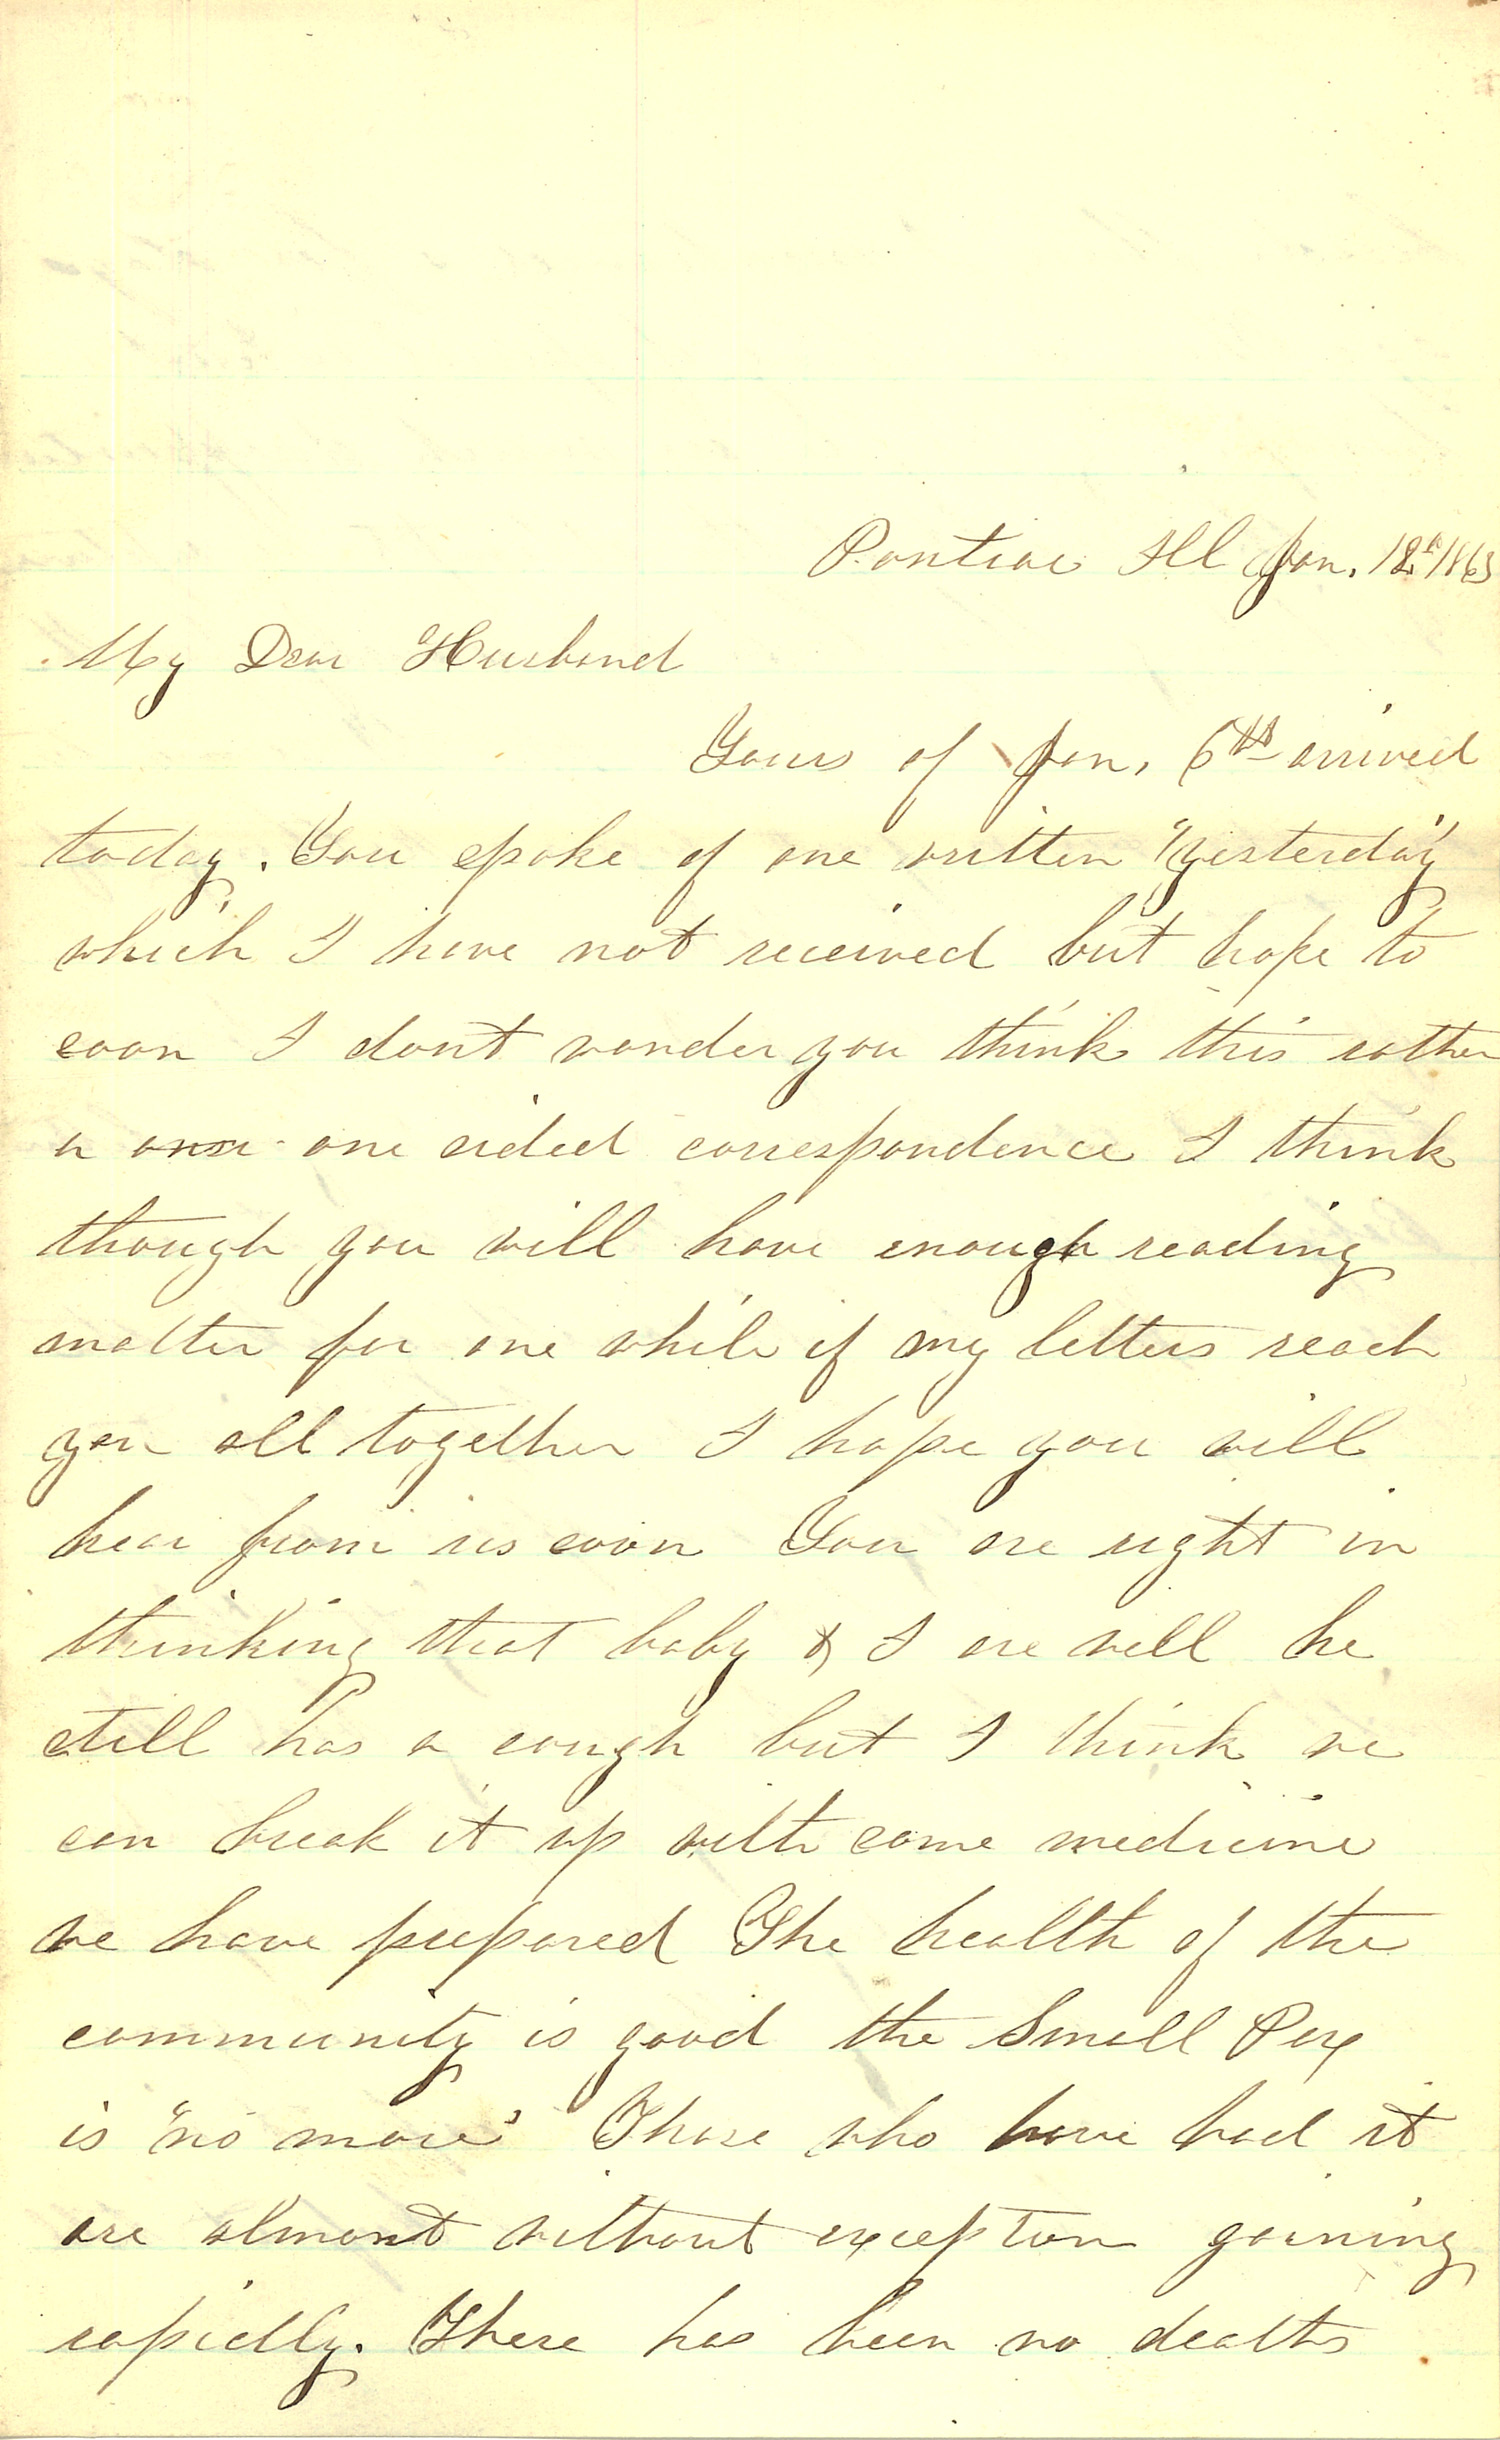 Joseph Culver Letter, January 12, 1863, Letter 2, Page 1